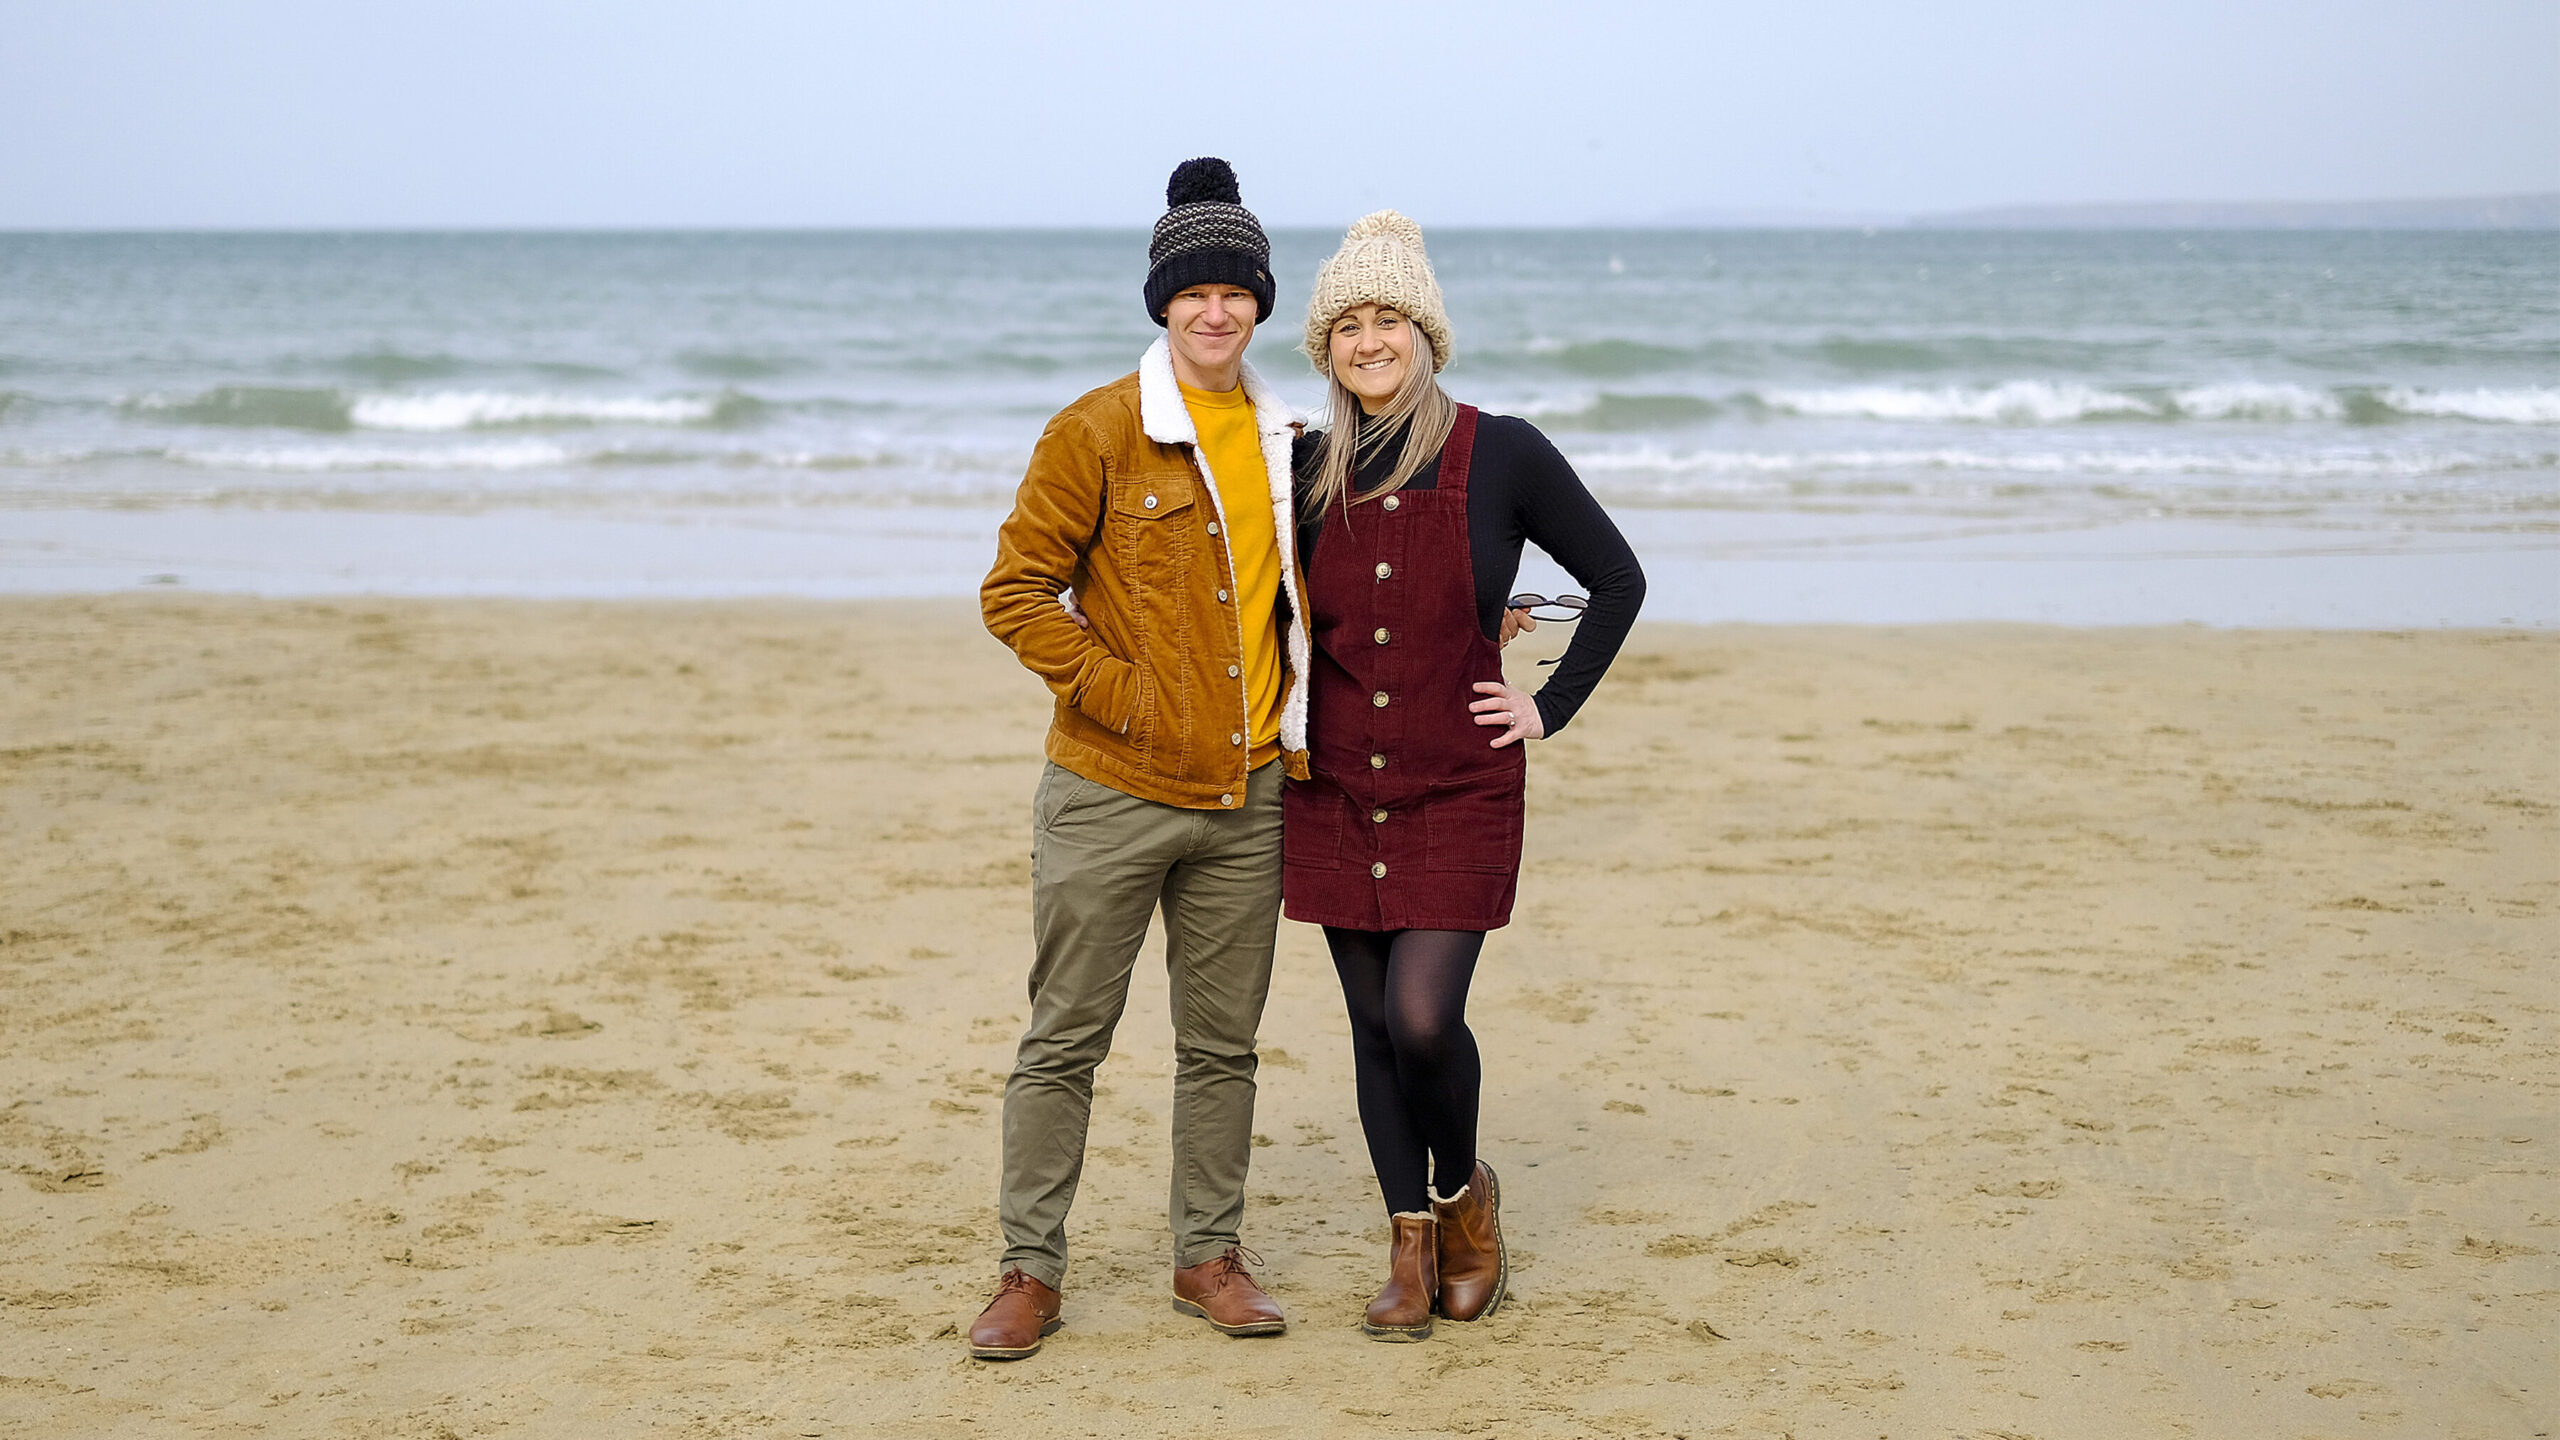 Joel (left) and Stacey (right) on Newquay Beach.